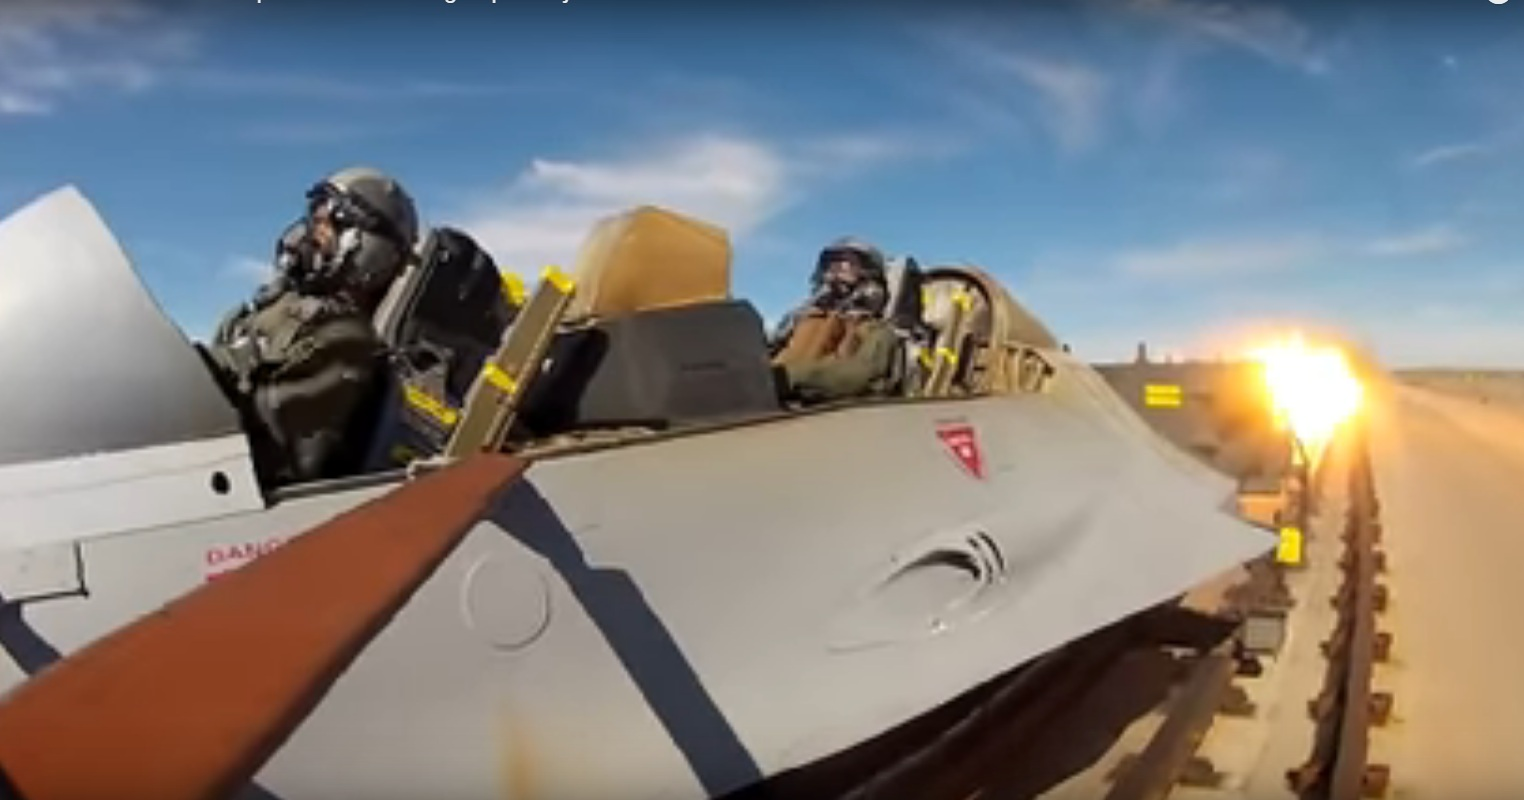 There Goes The Mannequin! Awesome High Speed Ejection Seat Tests